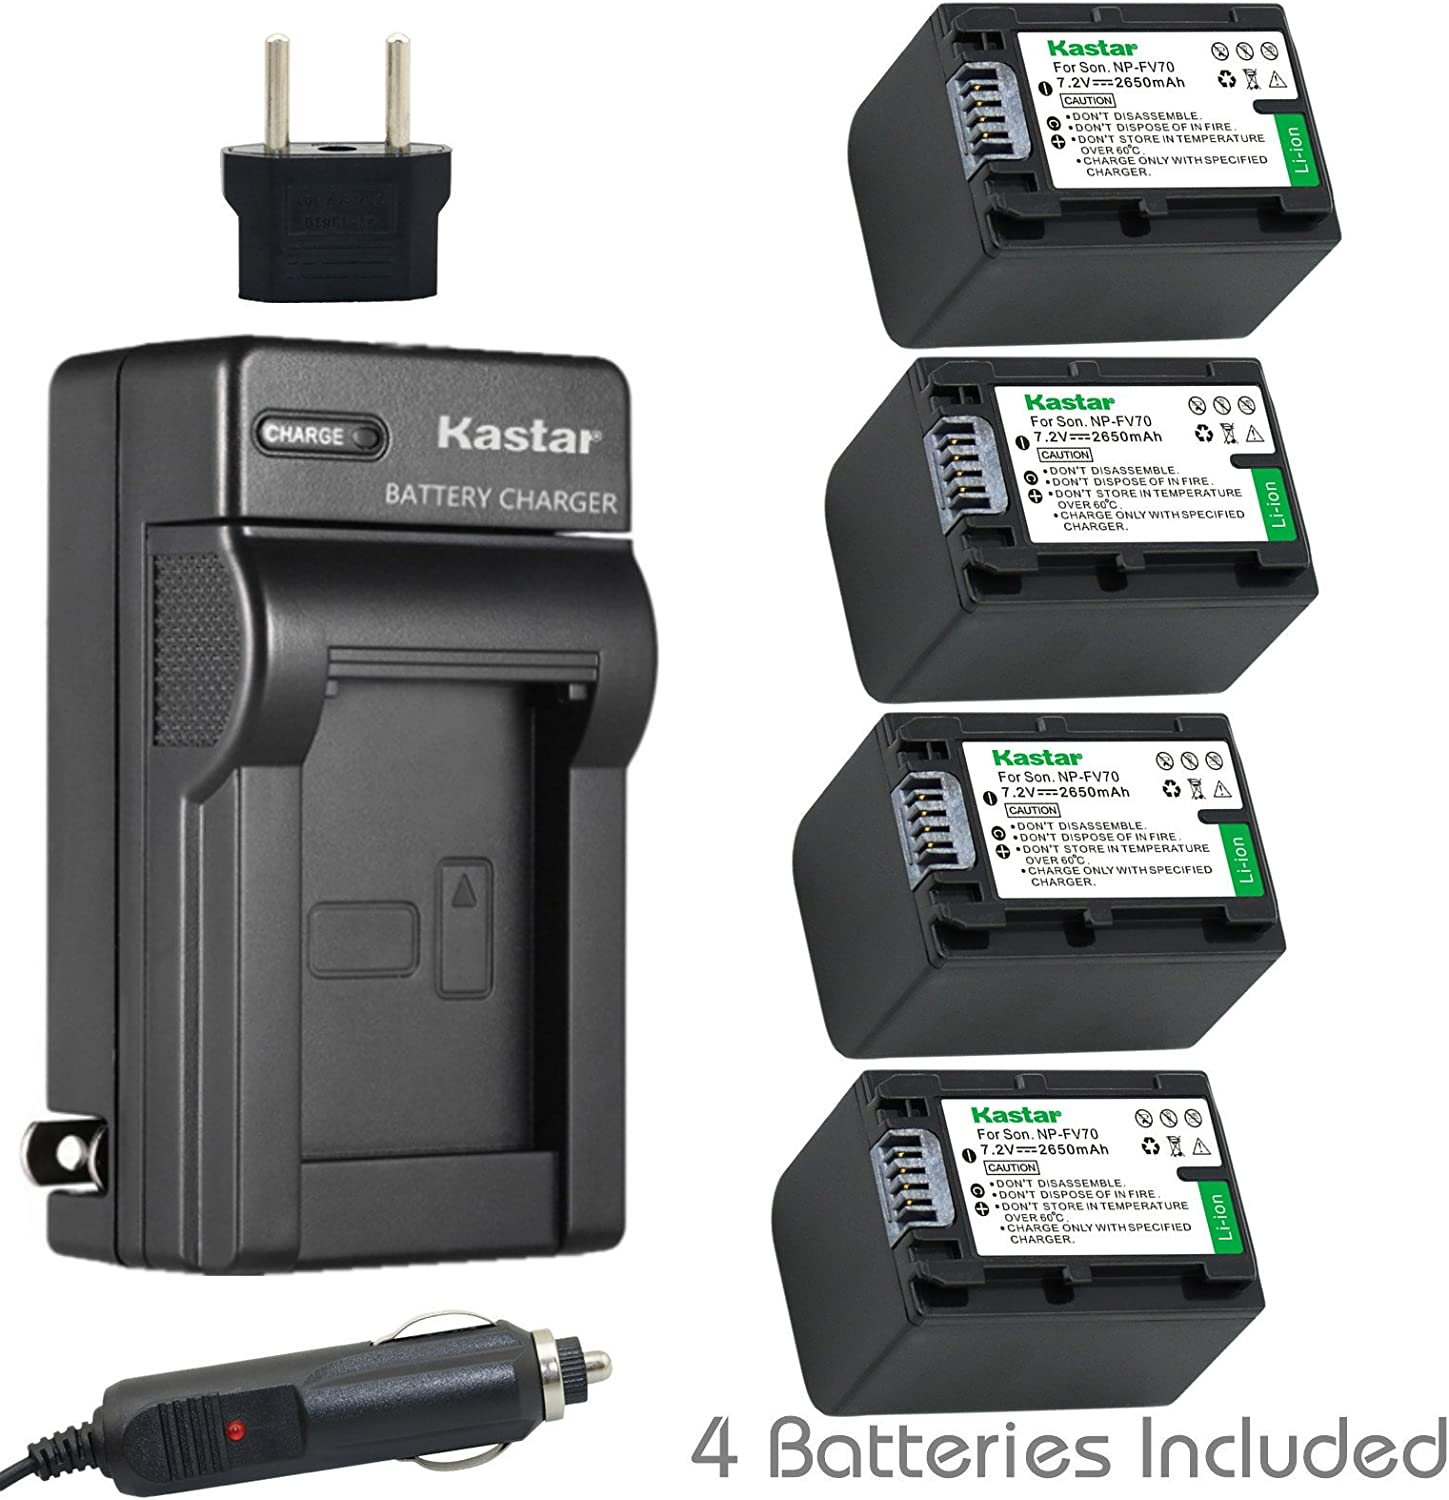 Kastar NPFH70 Battery (4-Pack) + Charger for Sony NP-FH100, FH60, FH70, NP-FH90, TRV and Sony DCR-DVD405 407E 408 410E 450 602E 650E DCR-HC96 DCR-SR85 HDR-HC9 HDR-UX20 HDR-SR12 DCR-SR65E XR500E etc.